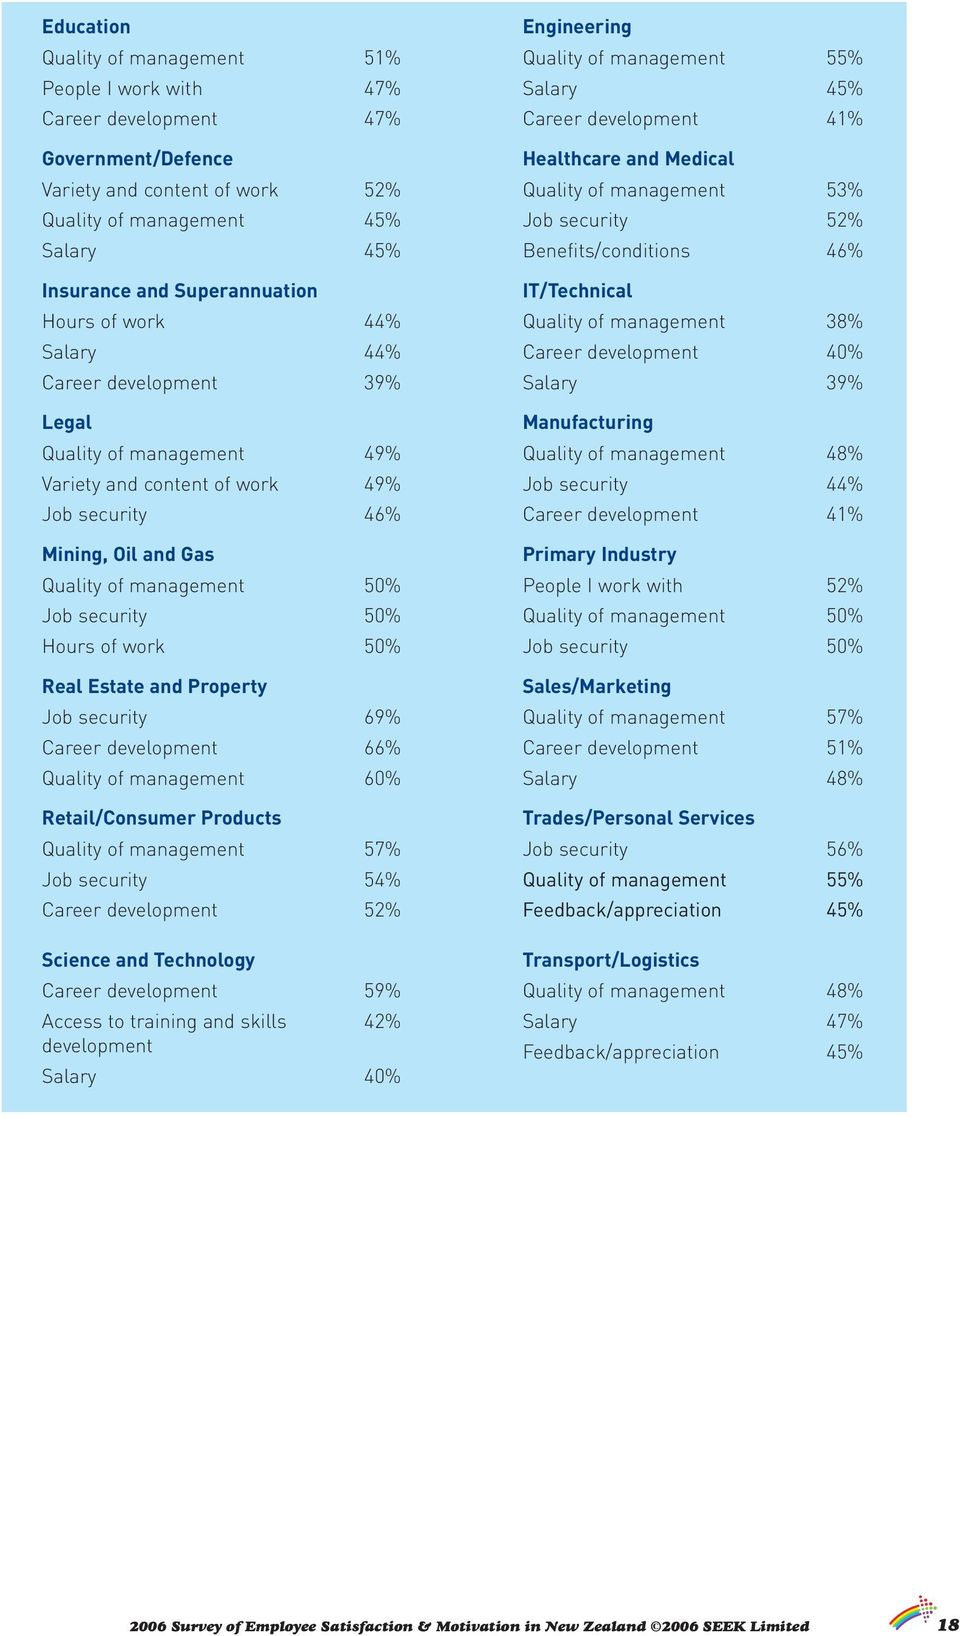 security Job security 52% Real Estate and Property Sales/Marketing Job security 69% 66% 60% 57% 51% 48% Retail/Consumer Products Trades/Personal